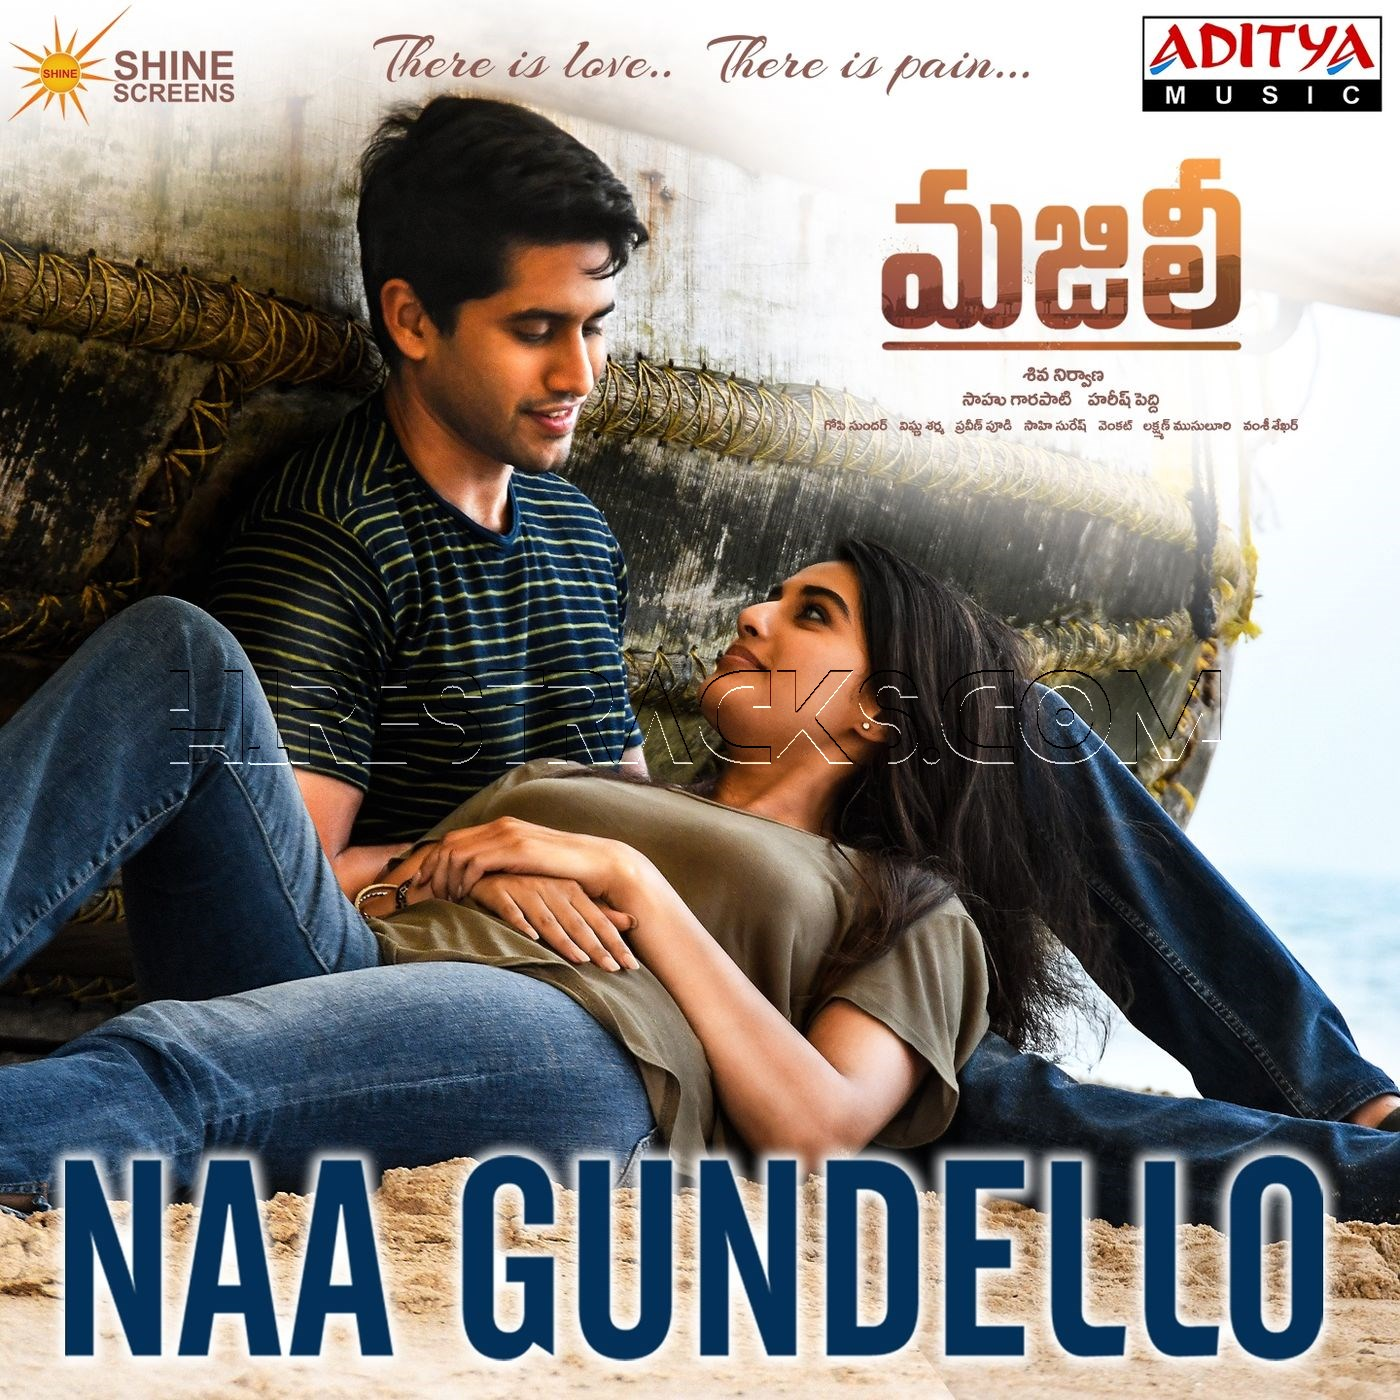 Naa Gundello (From Majili) – Single (2019)